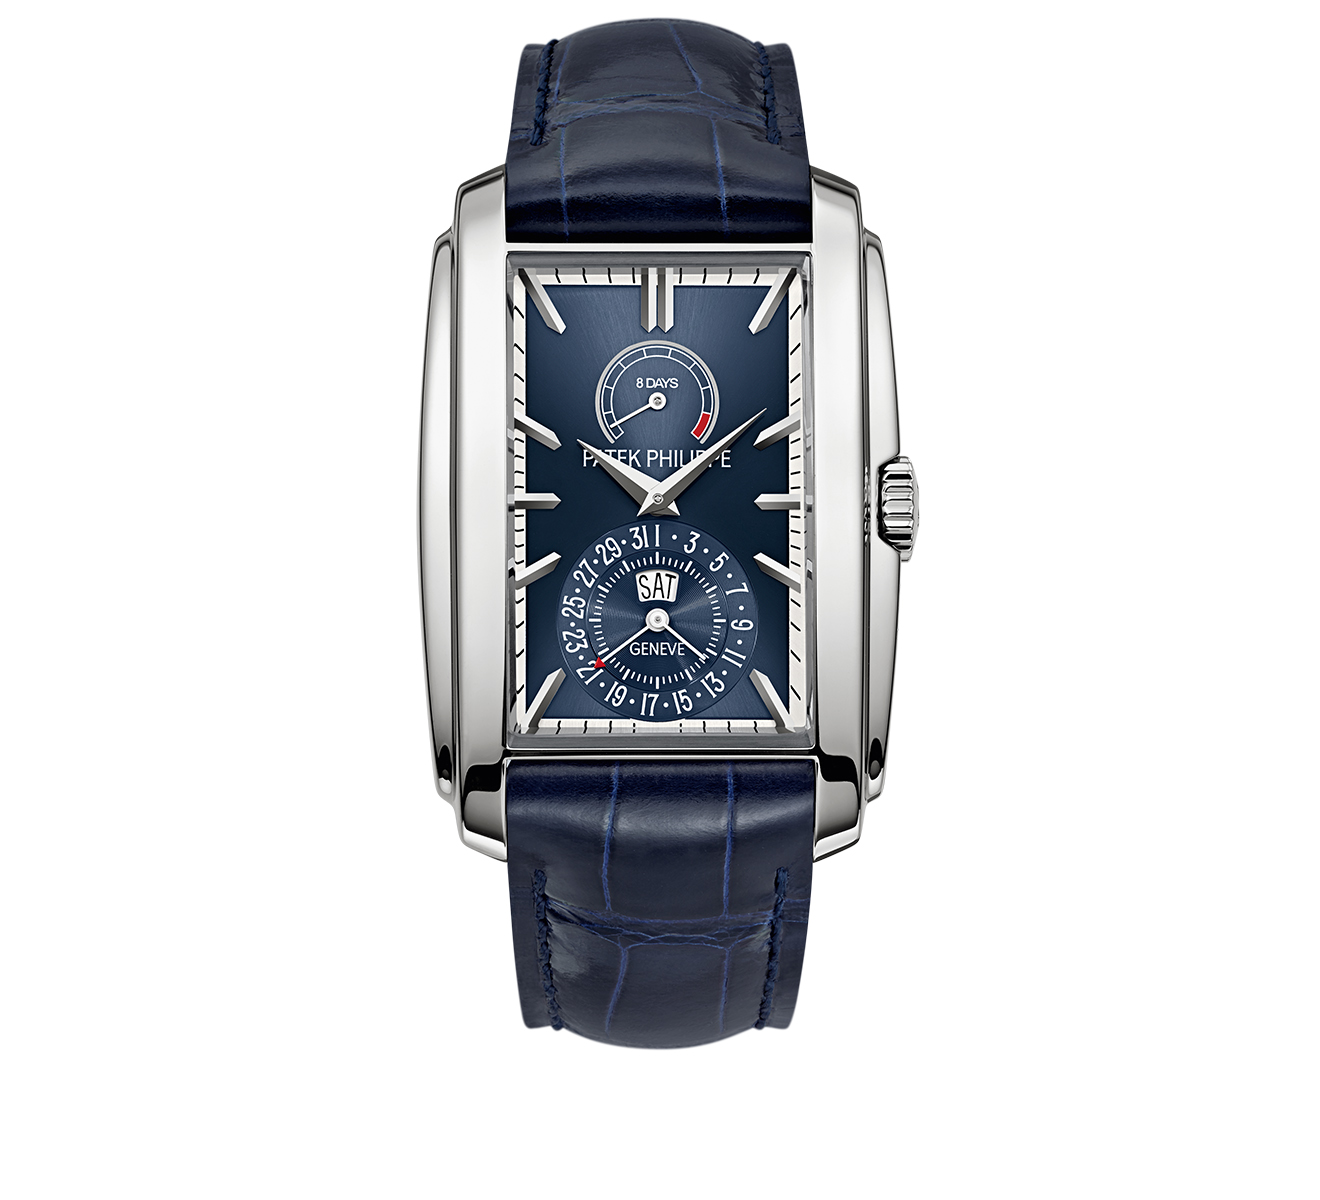 Часы 8 Days, Day & Date Indication PATEK PHILIPPE Gondolo 5200 G-001 - фото 1 – Mercury